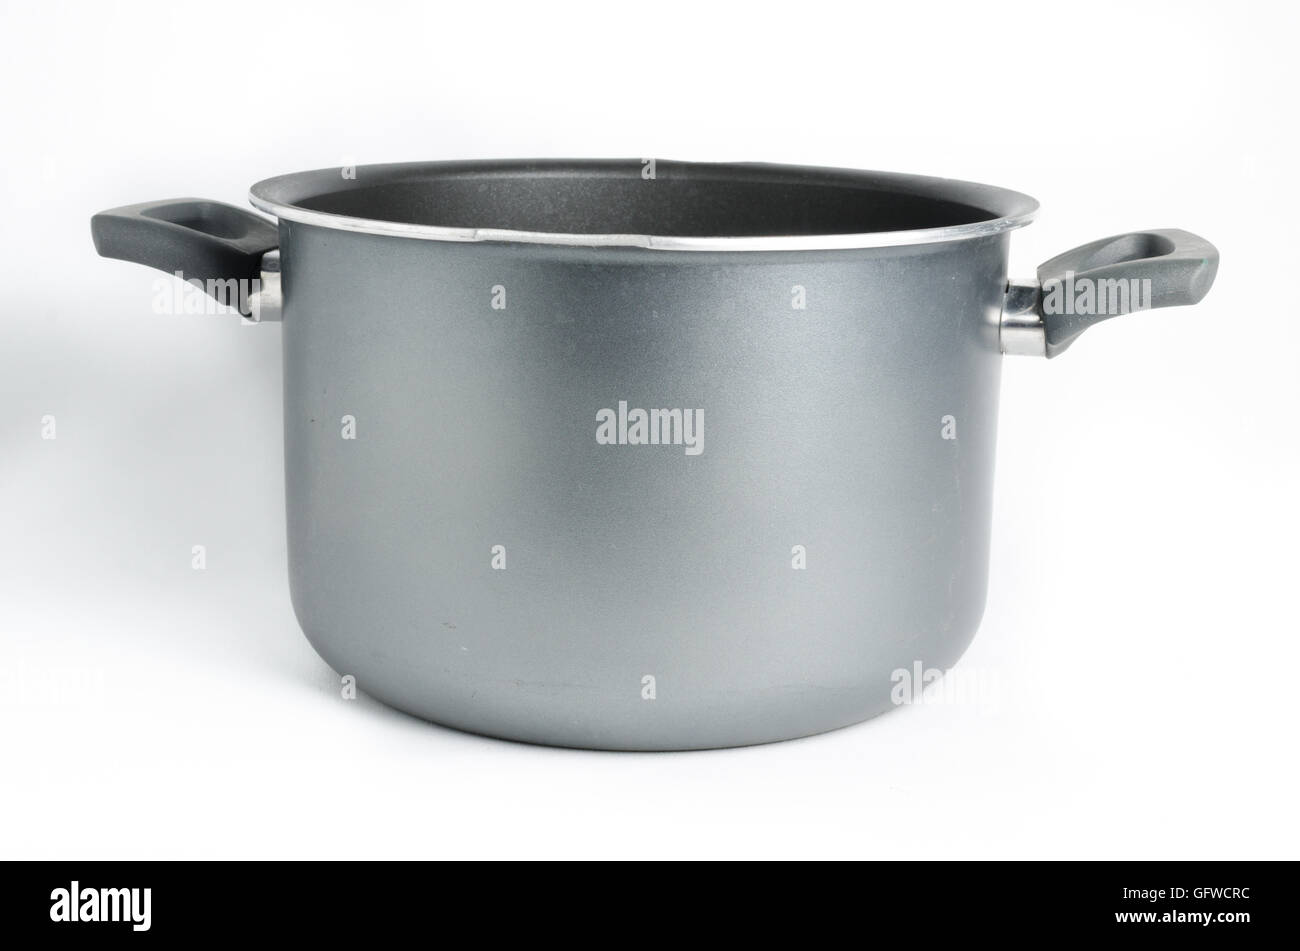 Simple empty grey cooking pot on white background - Stock Image